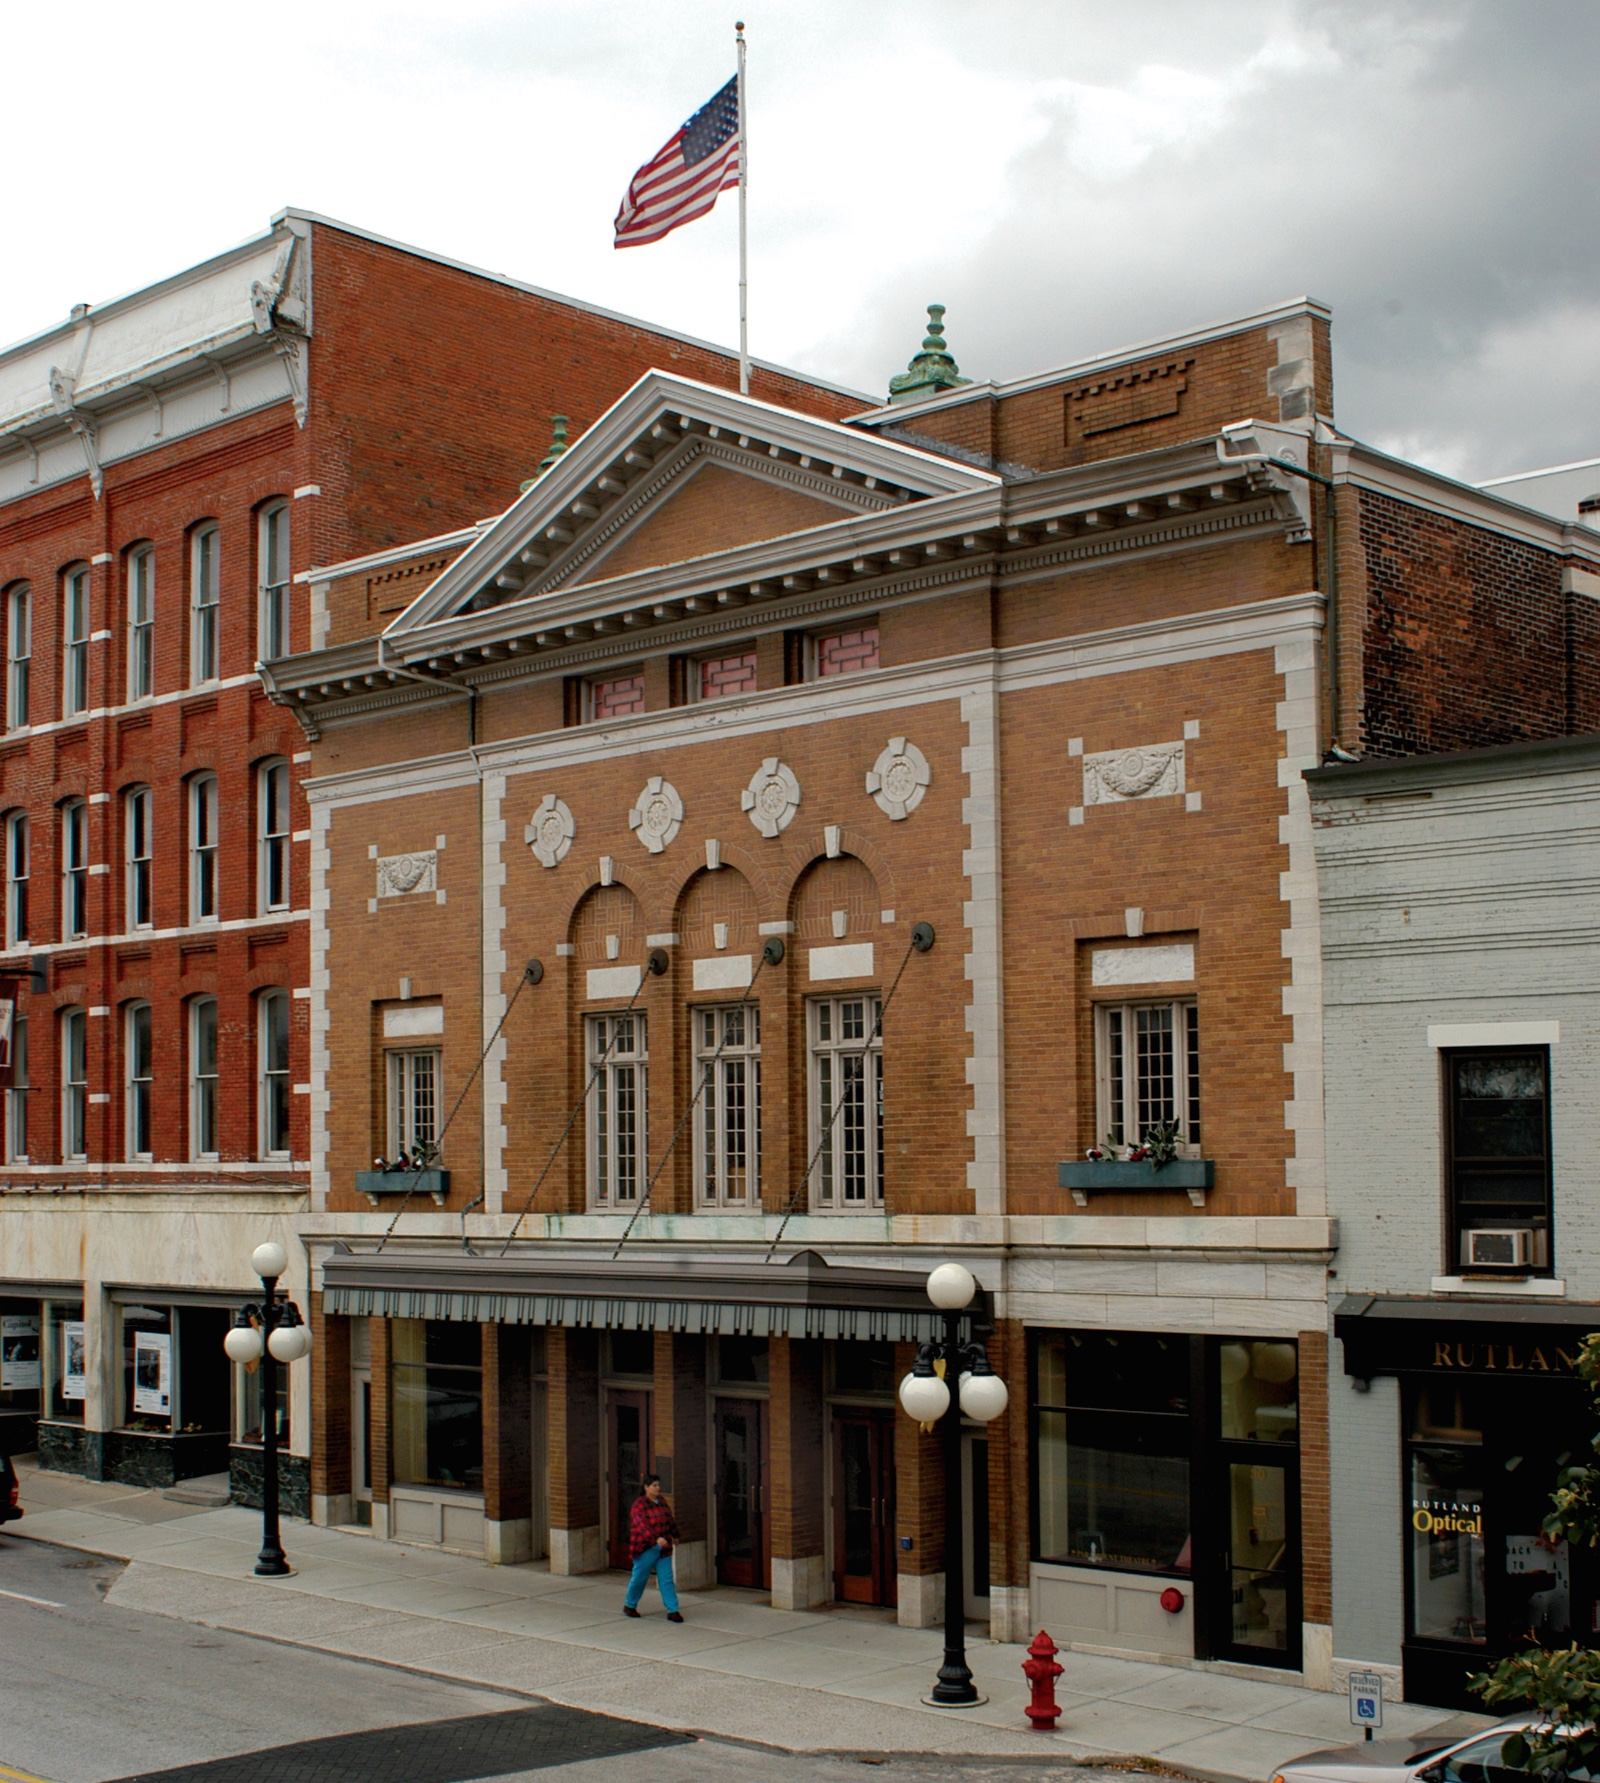 The Paramount Theatre, Rutland, VT